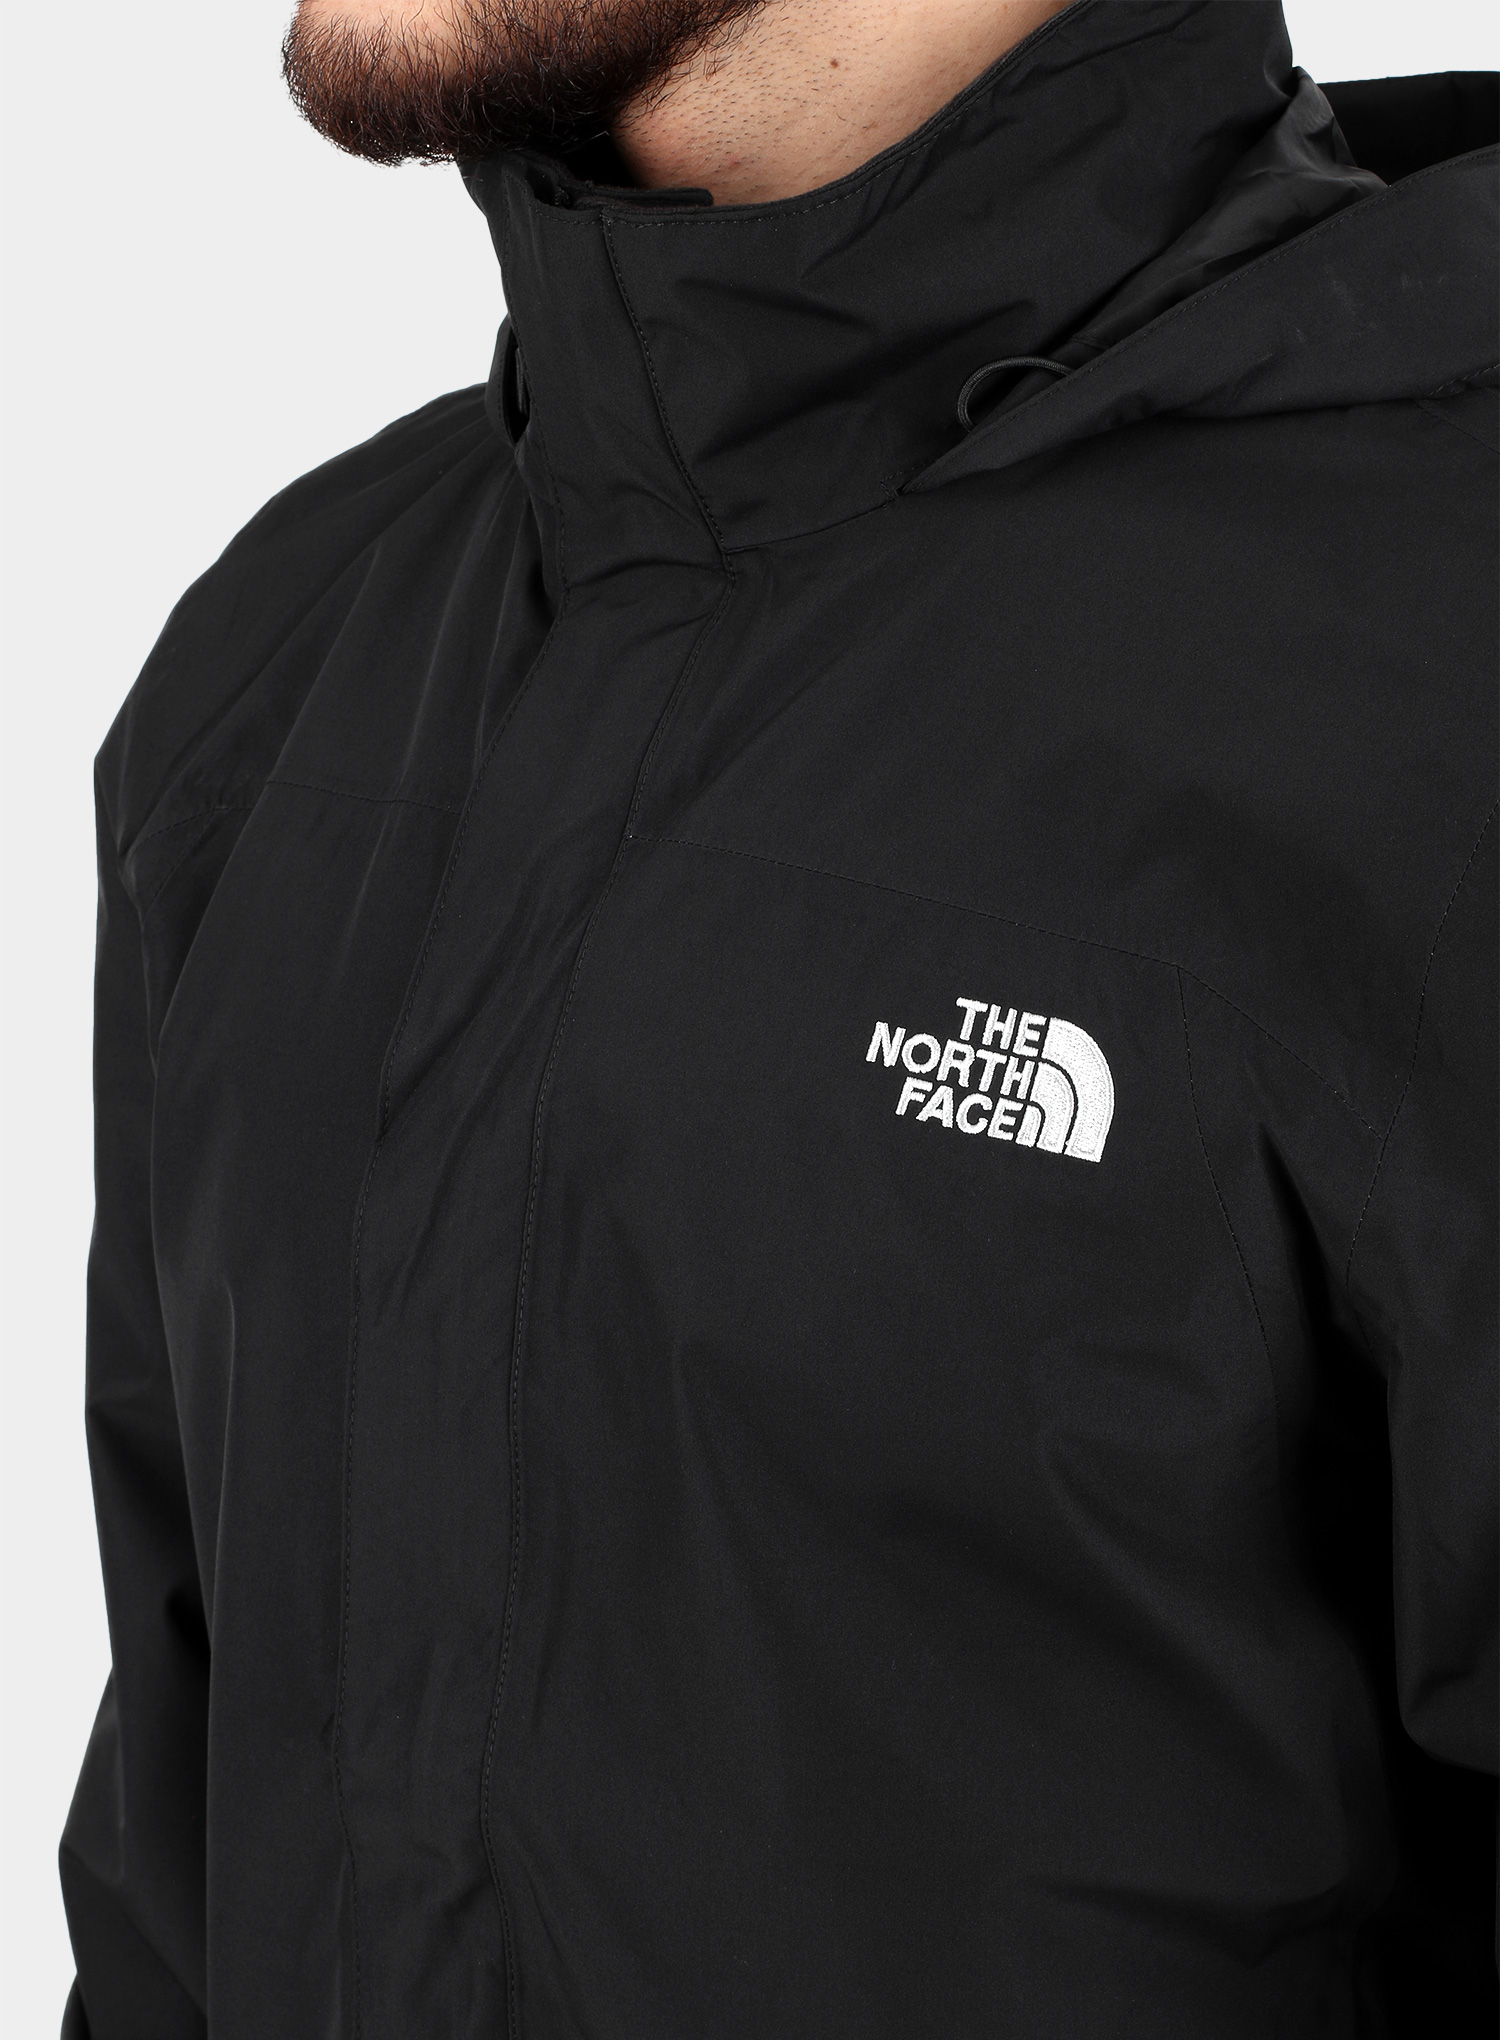 Kurtka The North Face Sangro Jacket - black - zdjęcie nr. 12